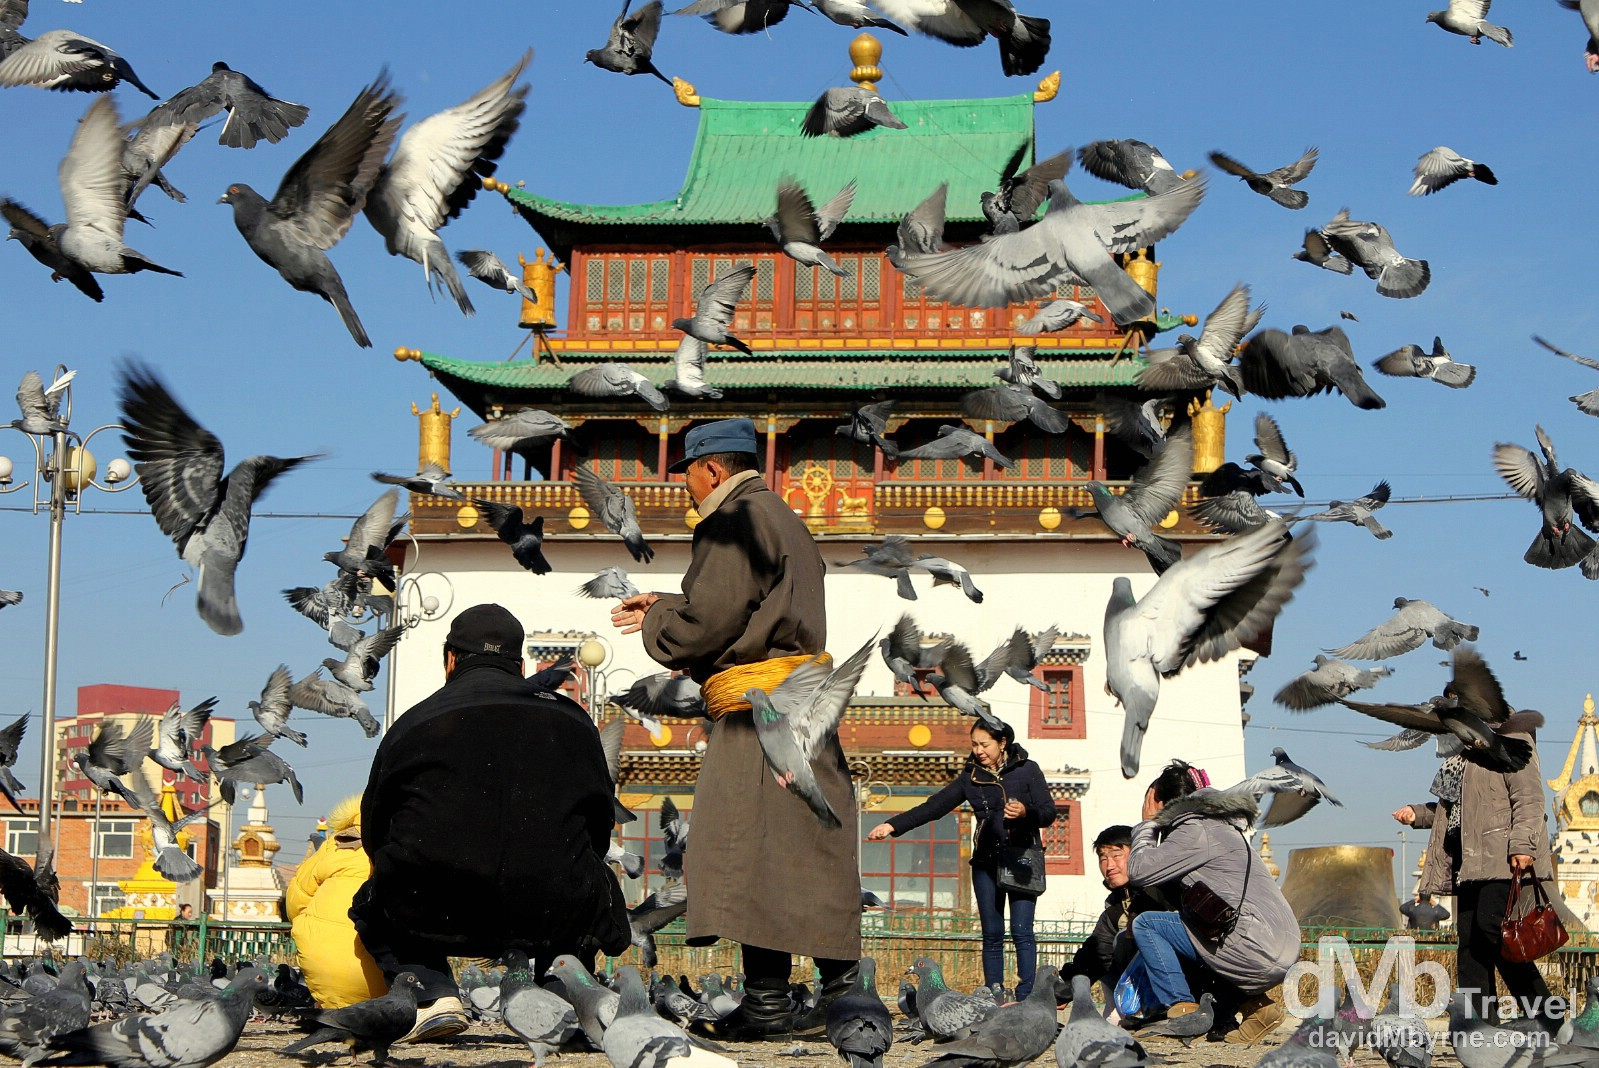 Pigeons (lots of them) & people in front of Migjid Janraisig Sum in Ulan Bator, Mongolia. November 1st 2012.